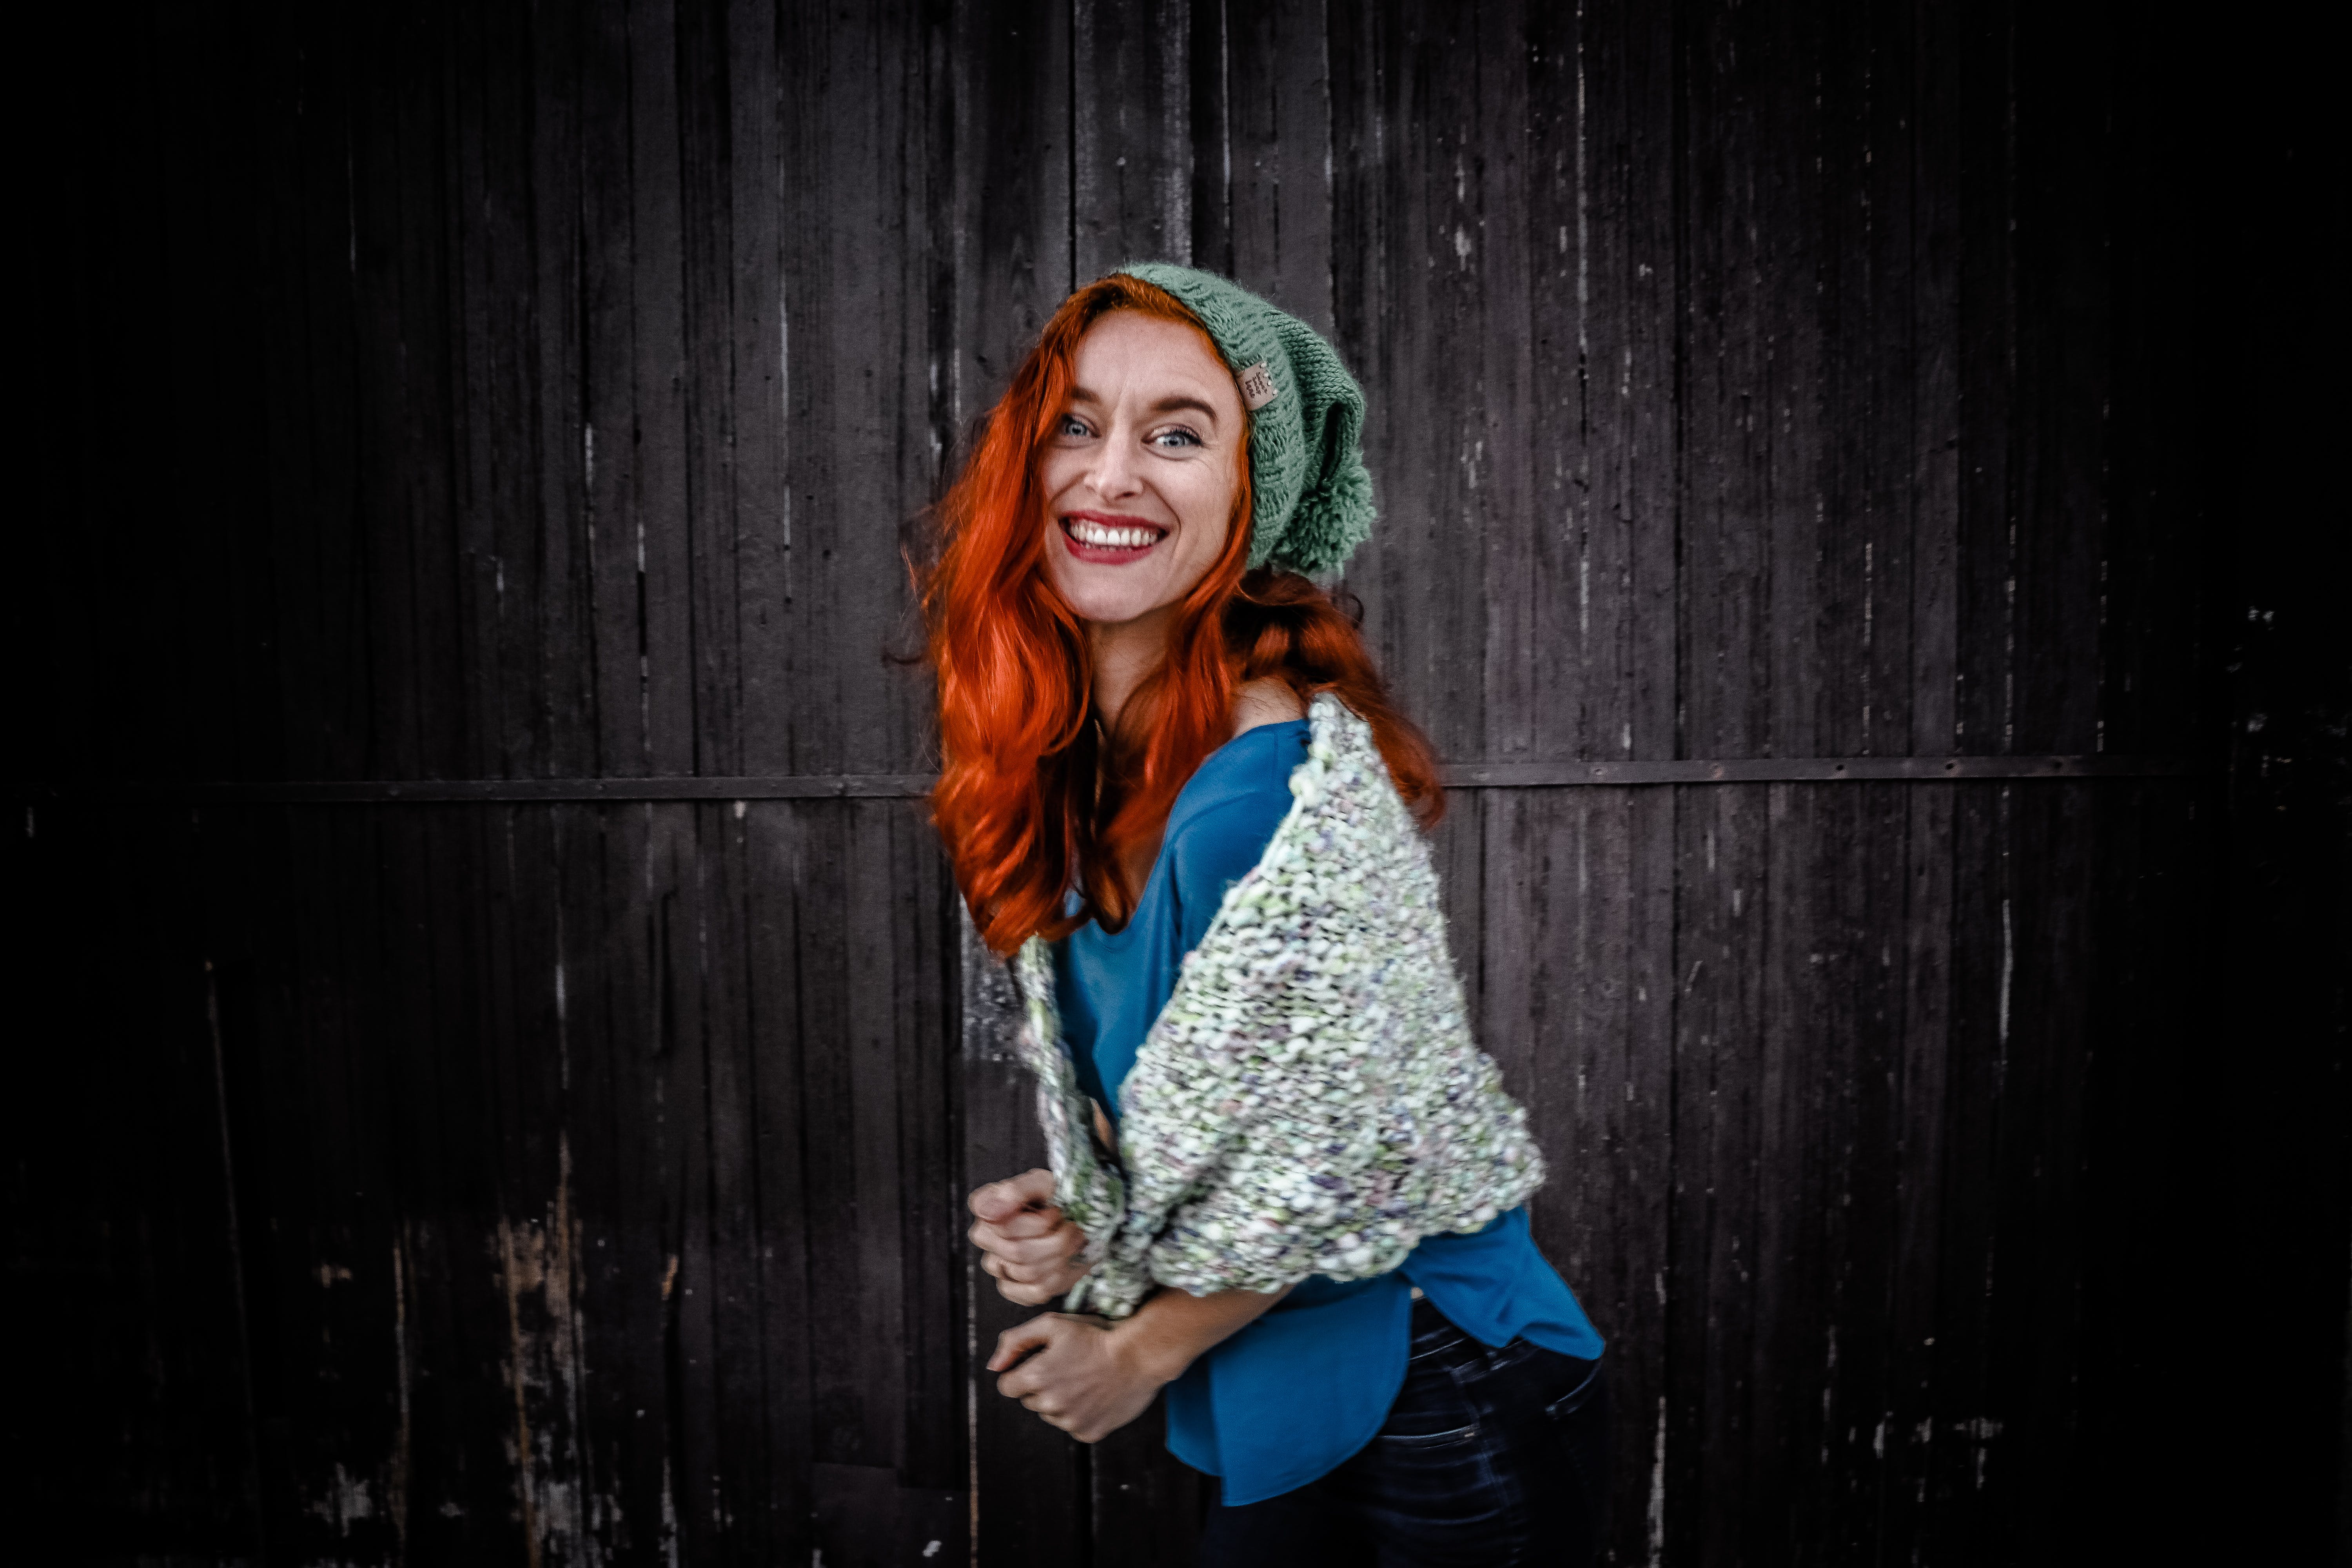 Woman in Blue Shirt an White Scarf With Red Hair